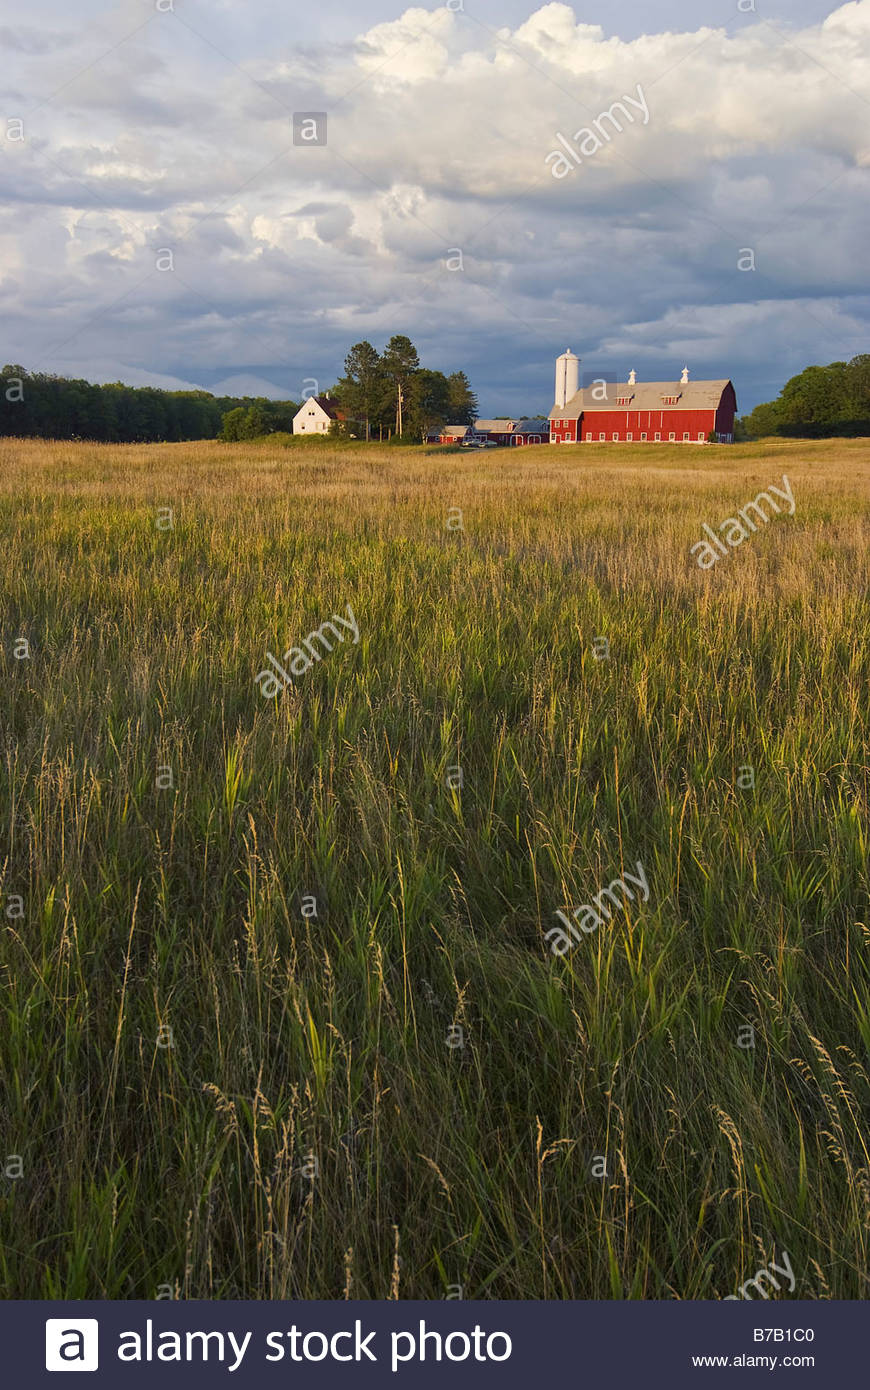 Wheat field with farm in distance - Stock Image